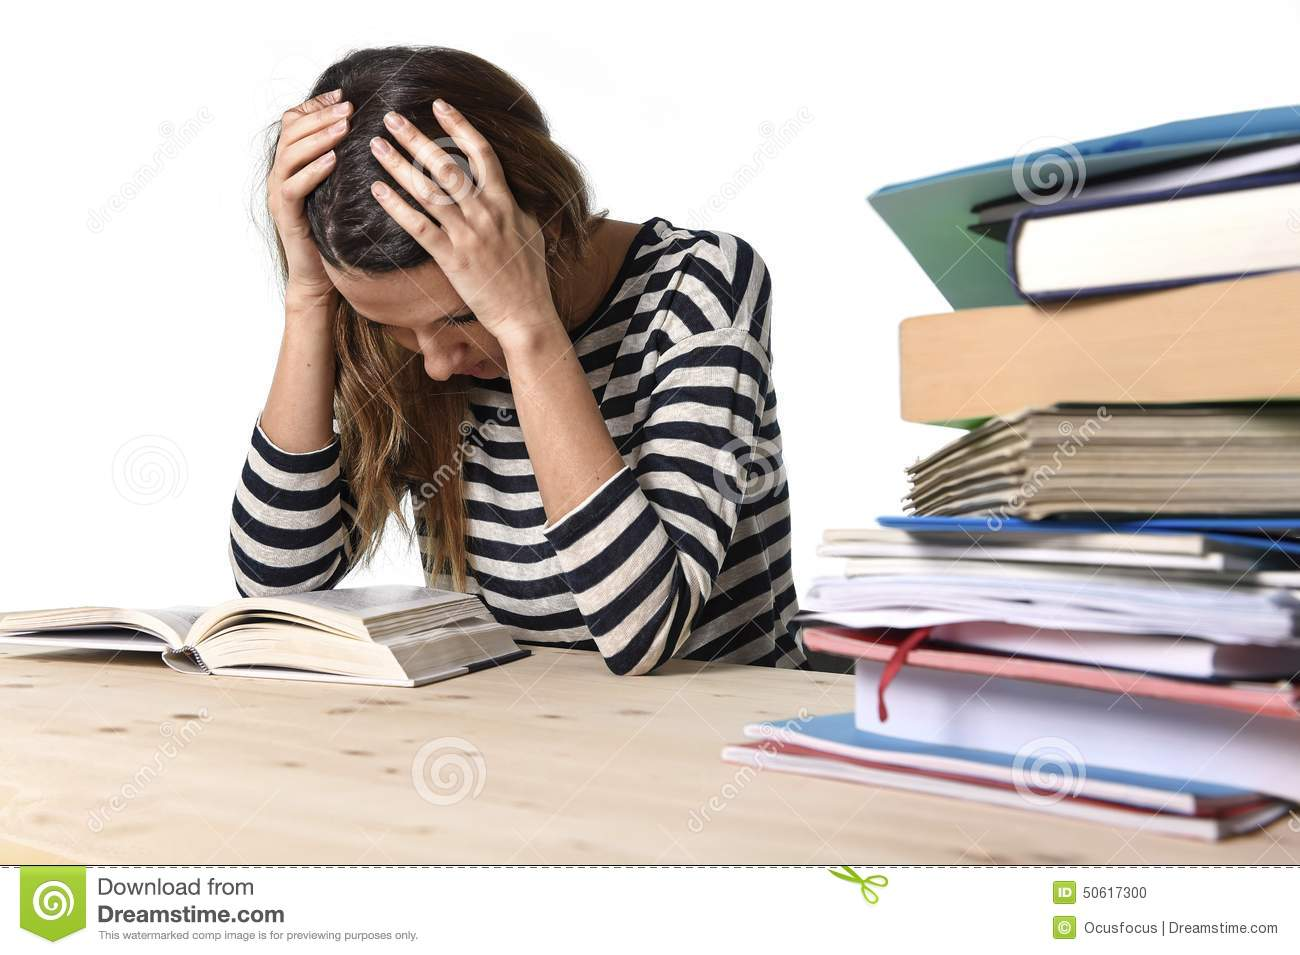 young-stressed-student-girl-studying-preparing-mba-test-exam-stress-tired-overwhelmed-pile-books-library-desk-50617300.jpg